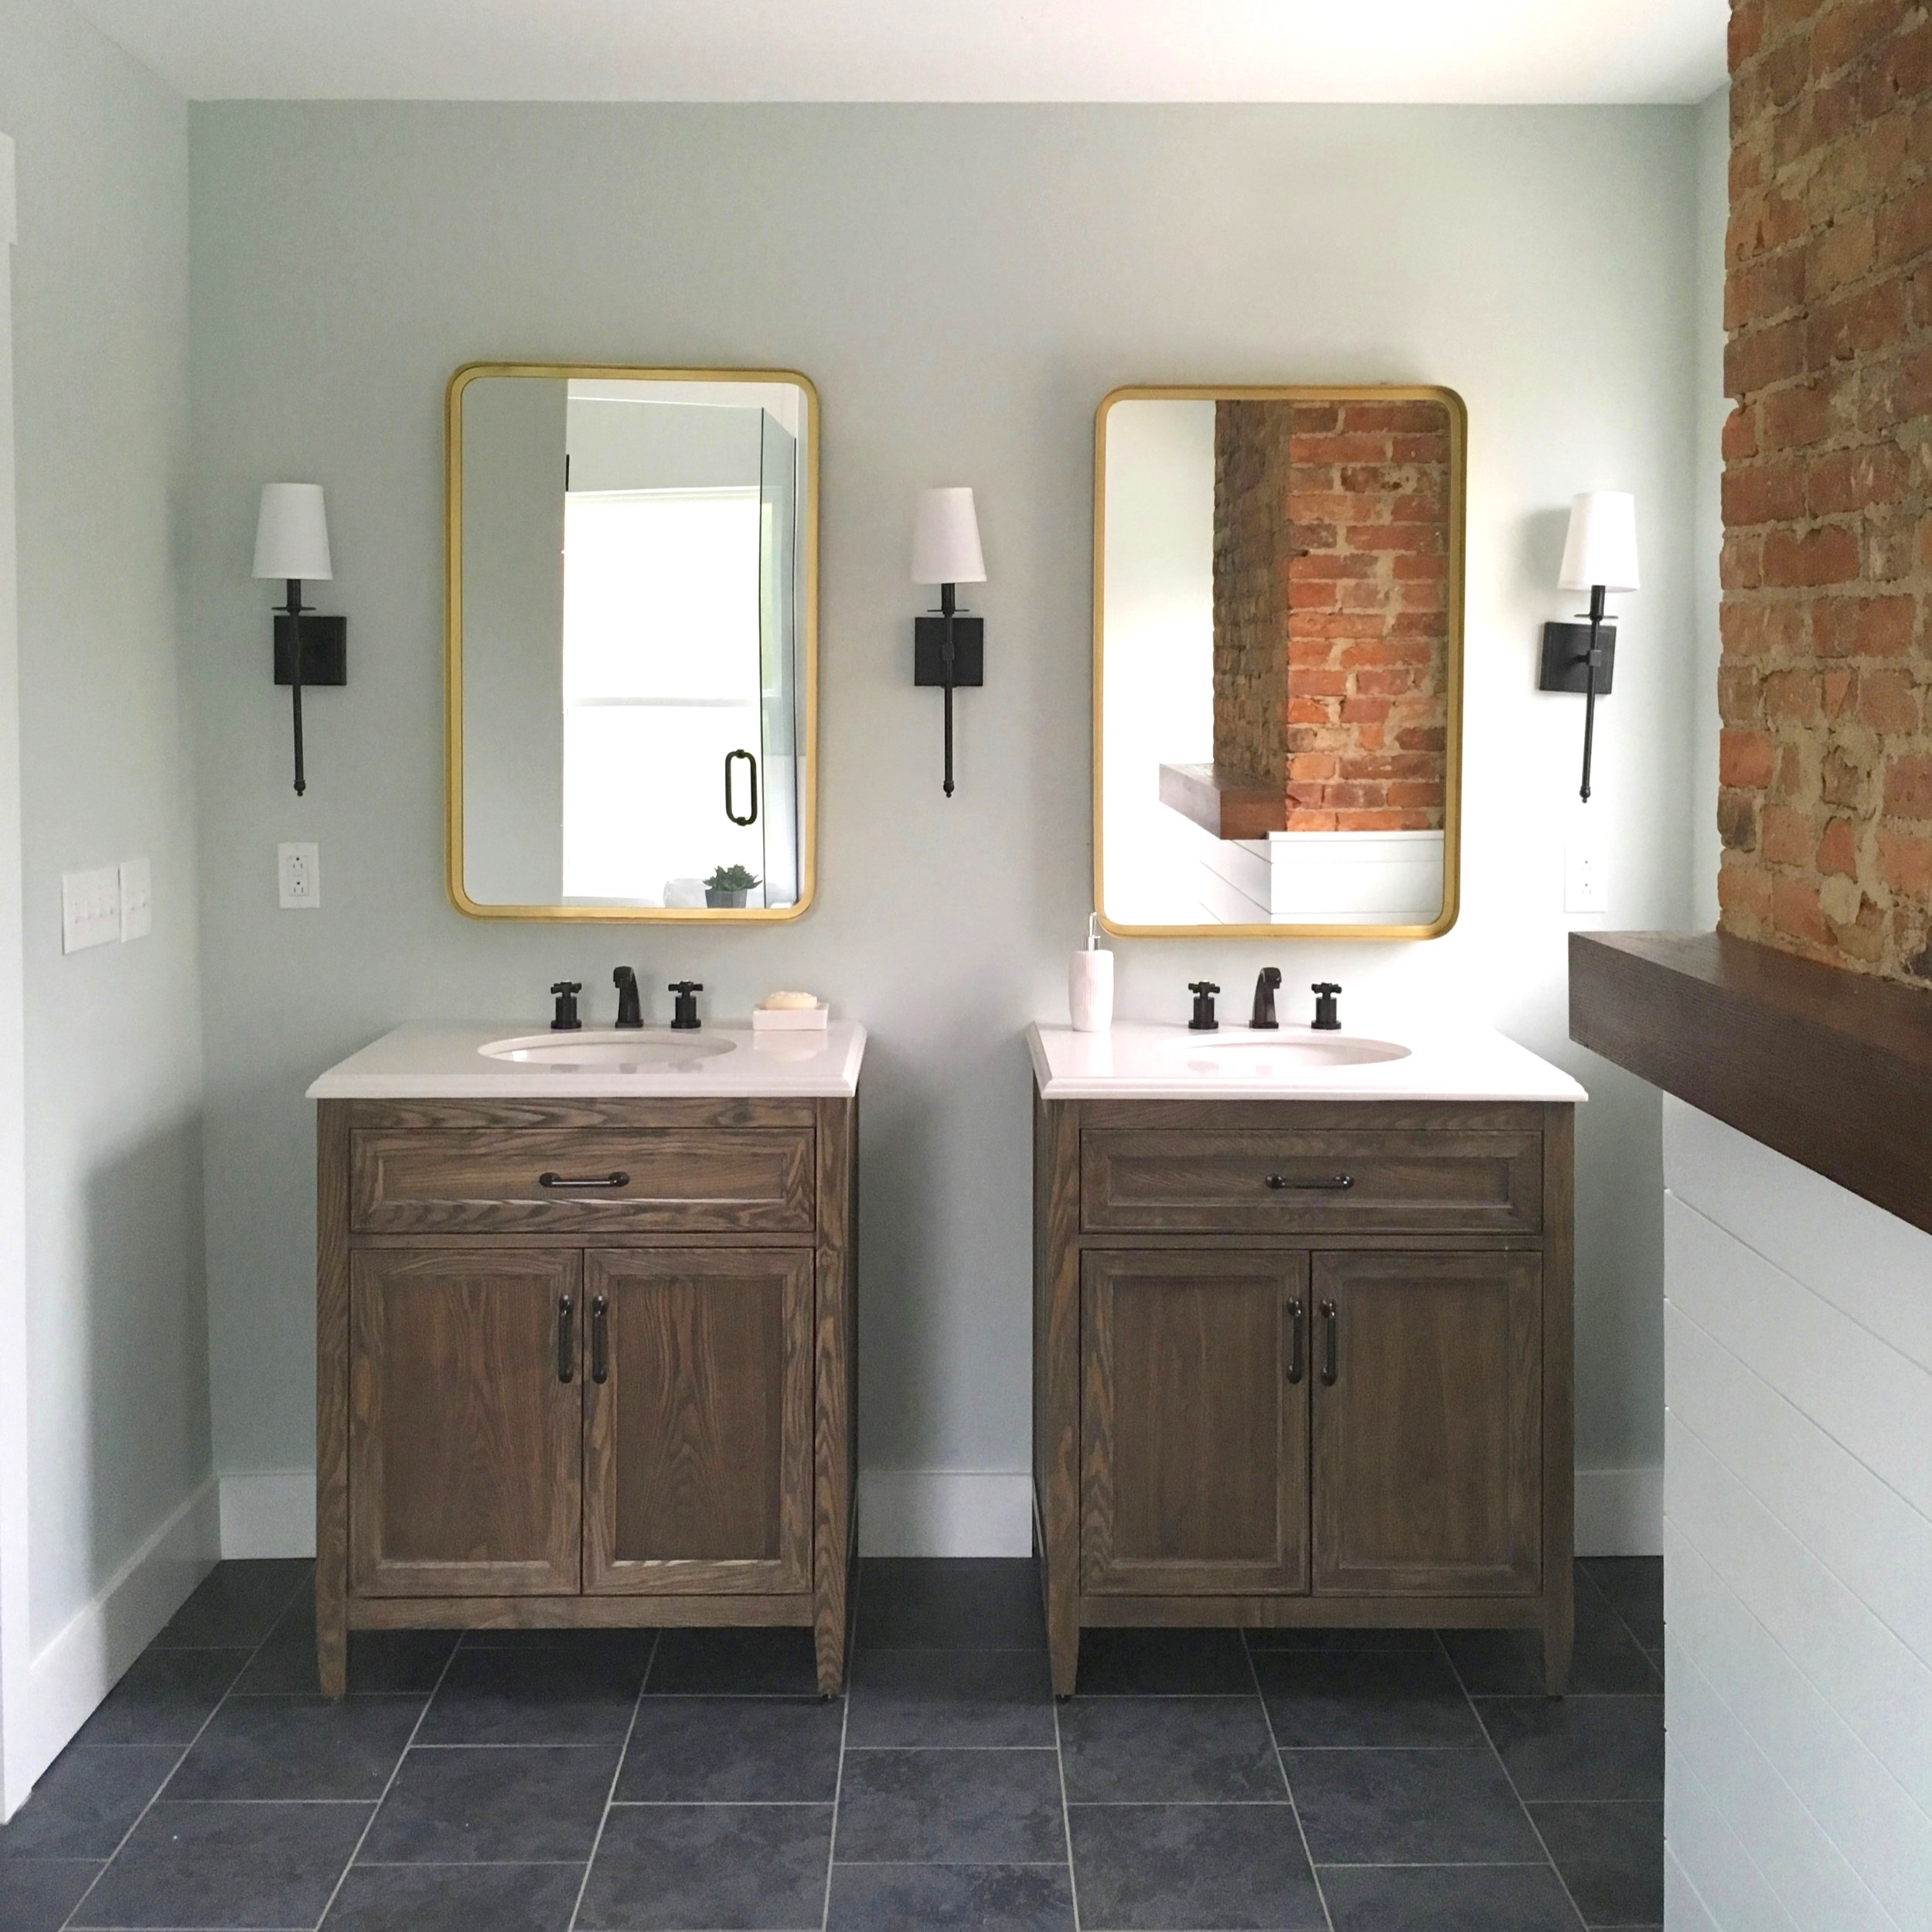 EAST LIBERTY  Full gut renovation to entire home  Architectural design, finishes, fixtures & custom millwork